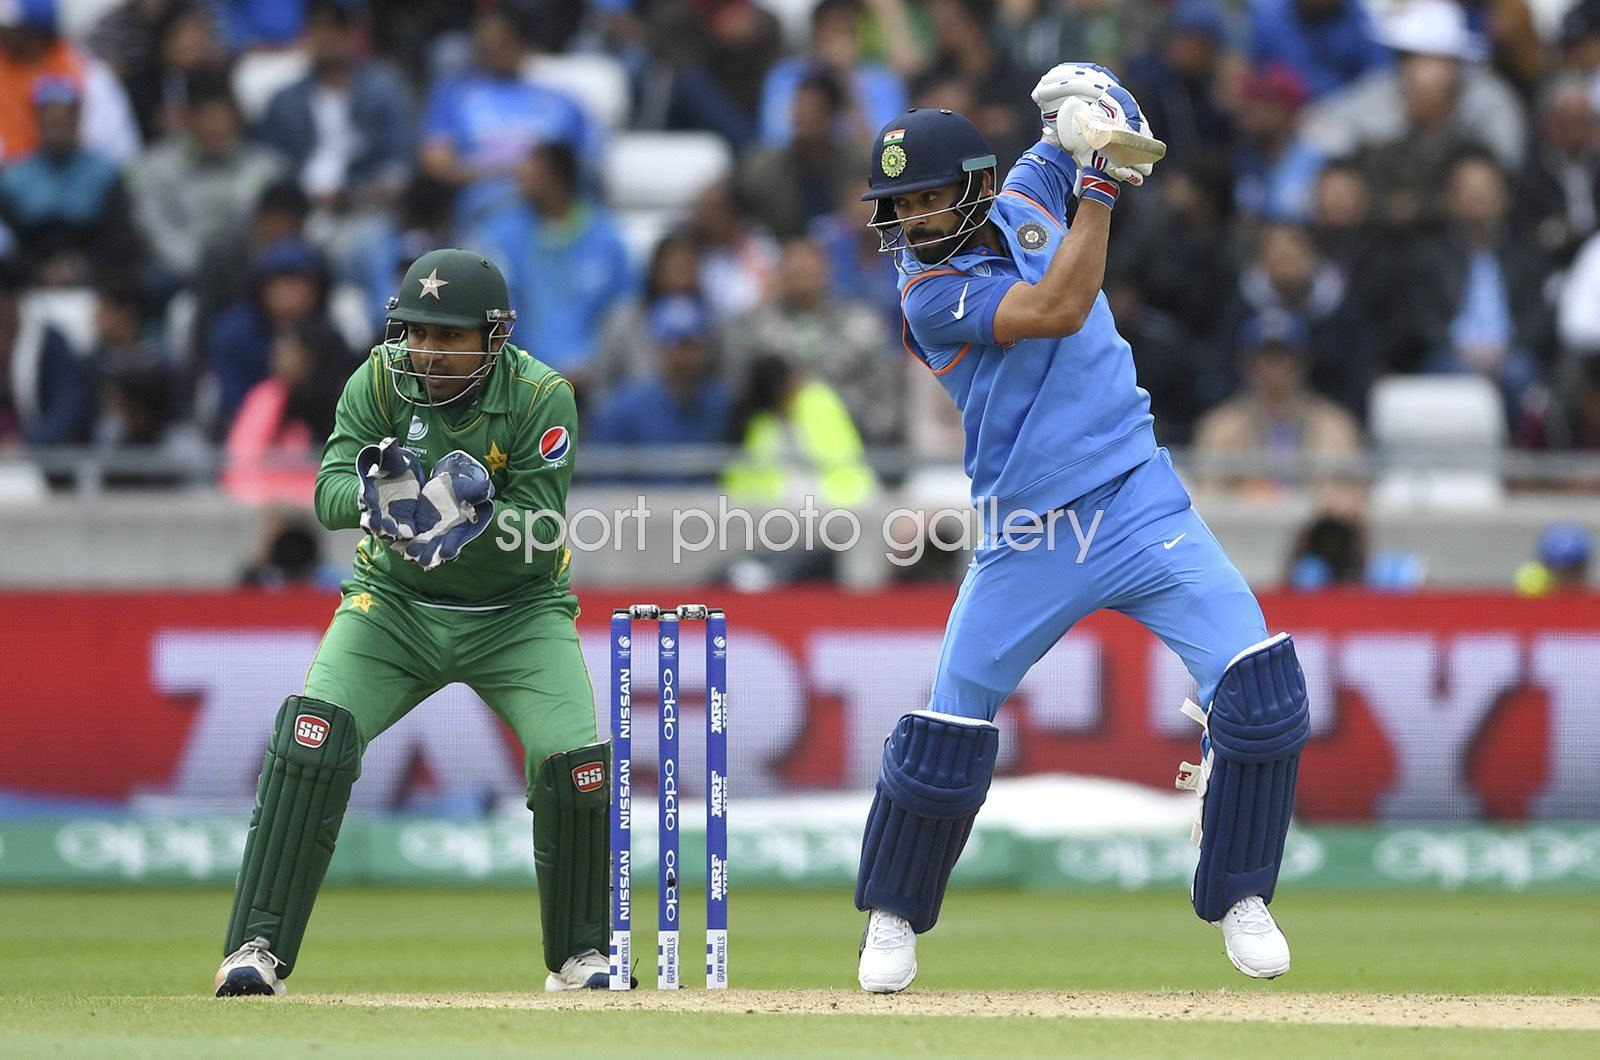 Virat Kohli India v Pakistan Champions Trophy Edgbaston 2017